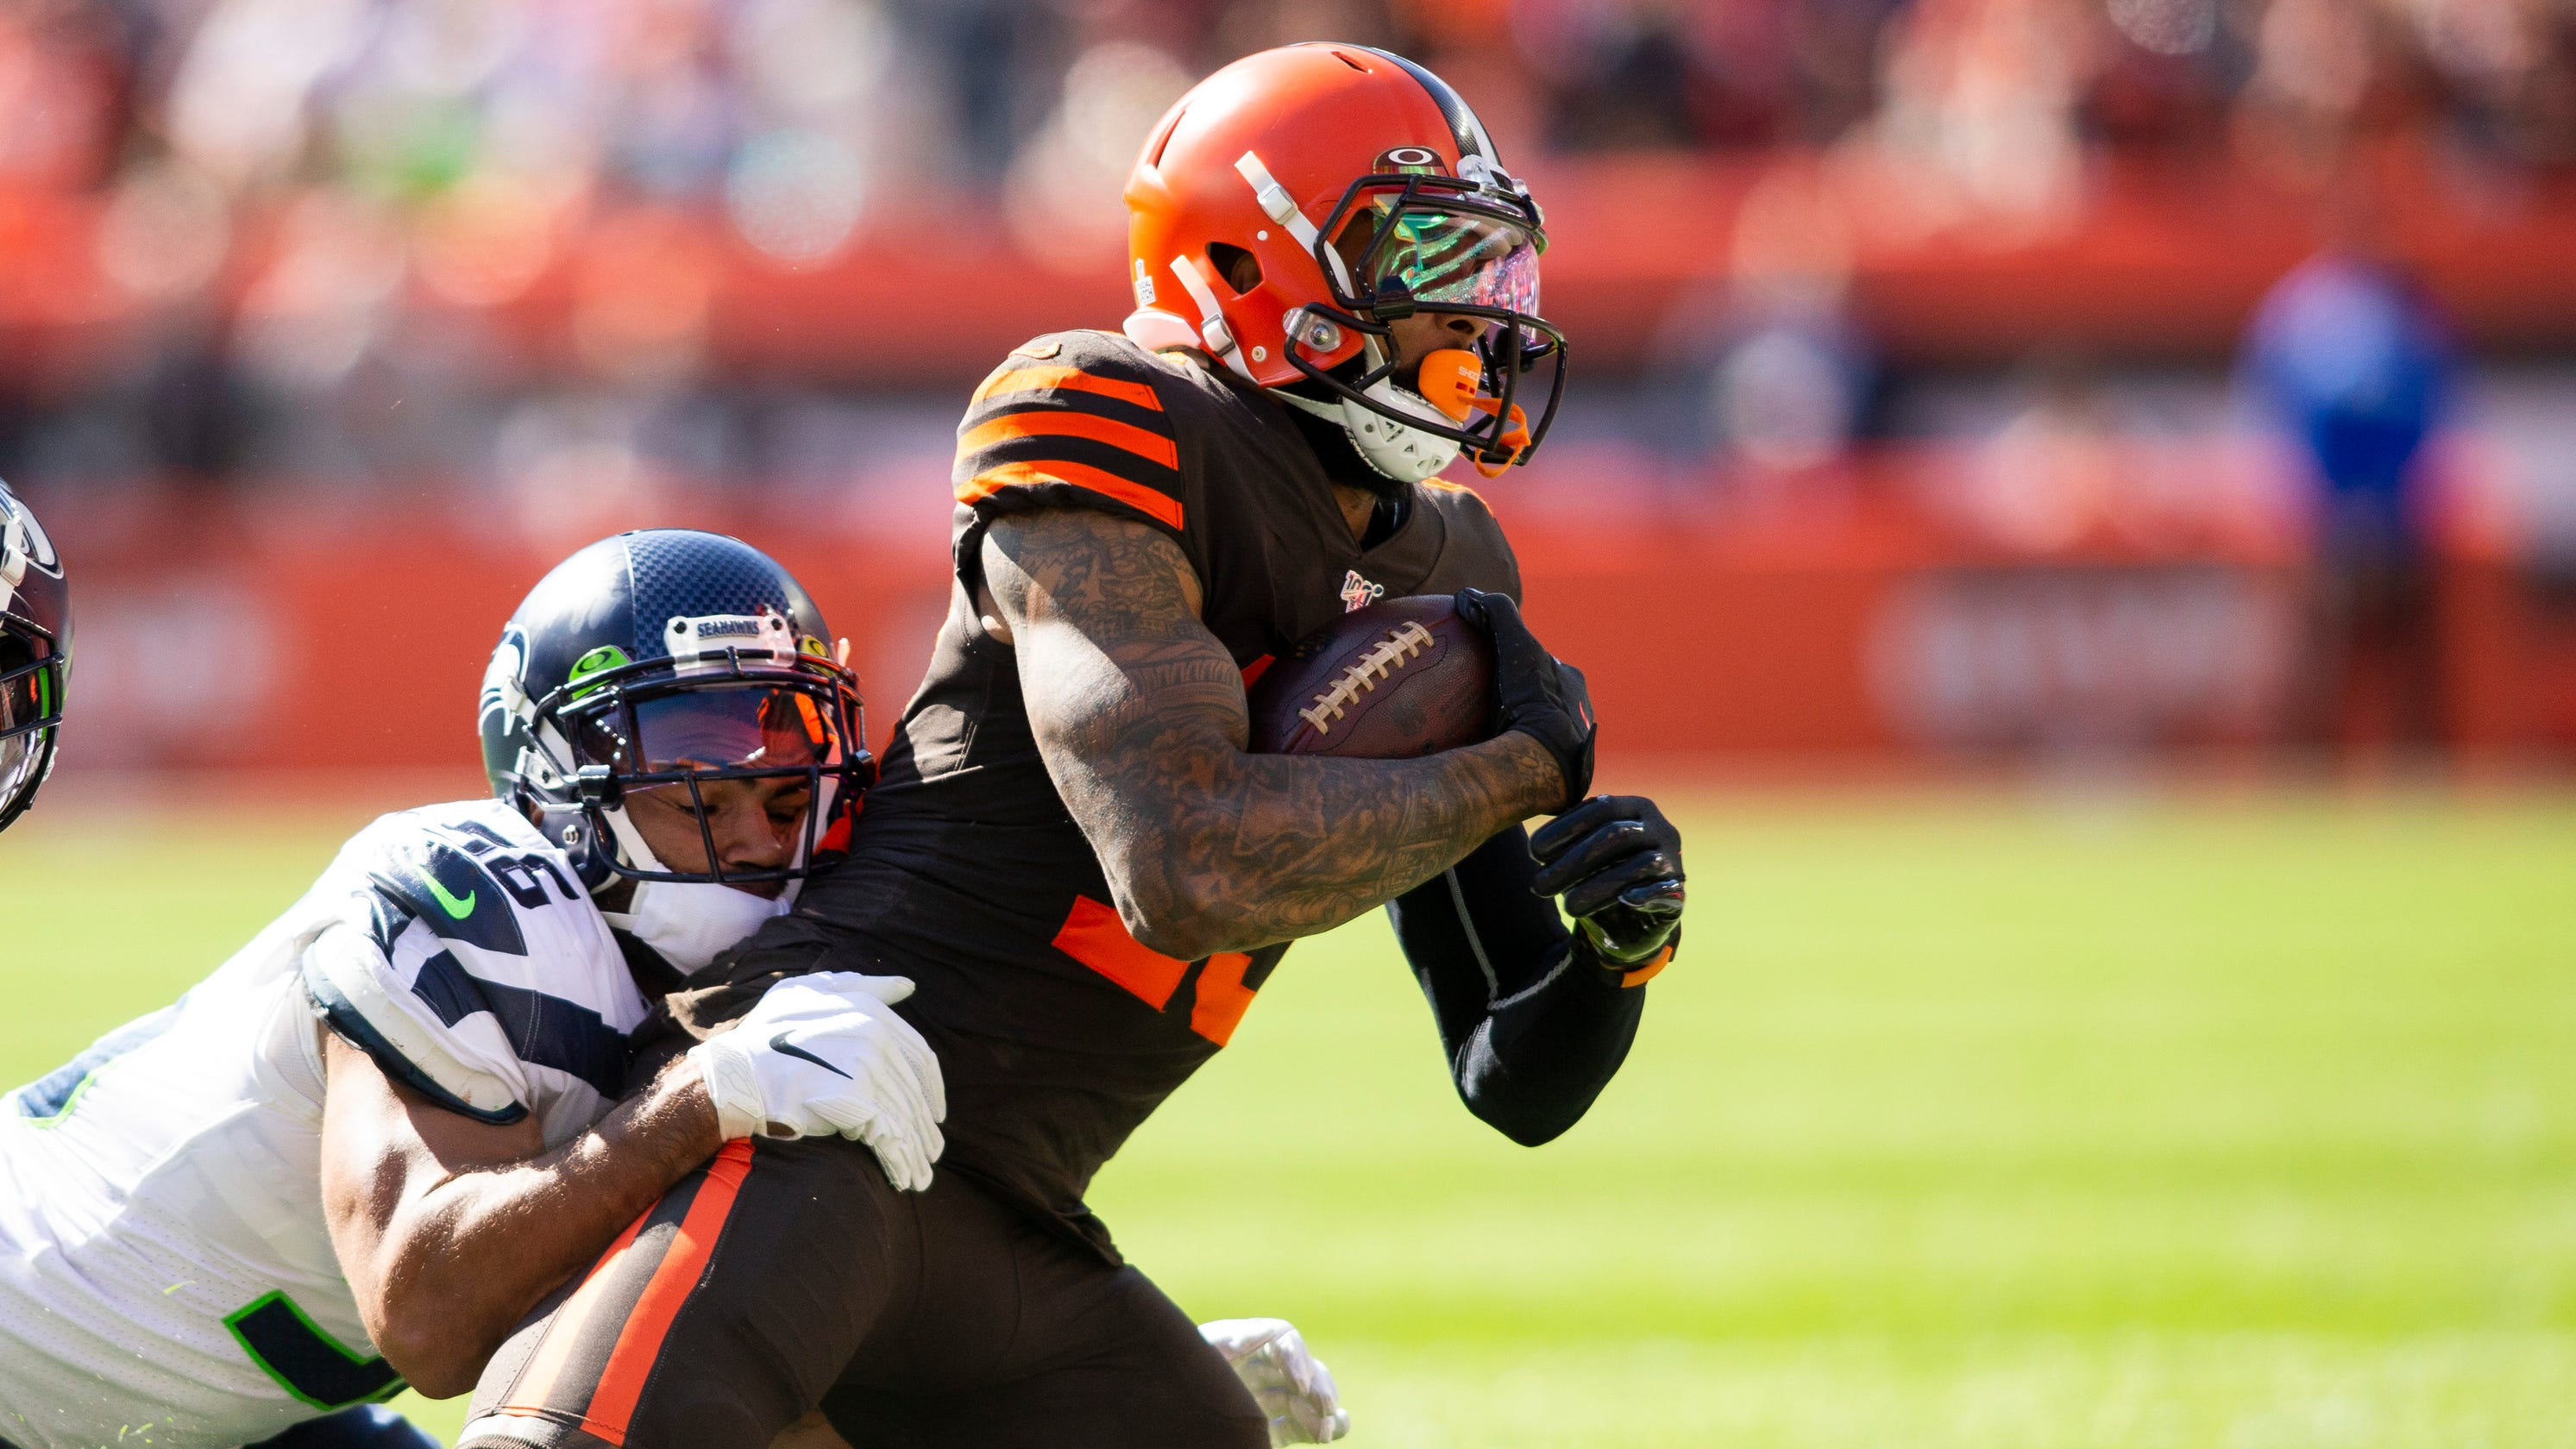 Cleveland Browns: Baker Mayfield and Co. sunk by miscues vs. Seahawks